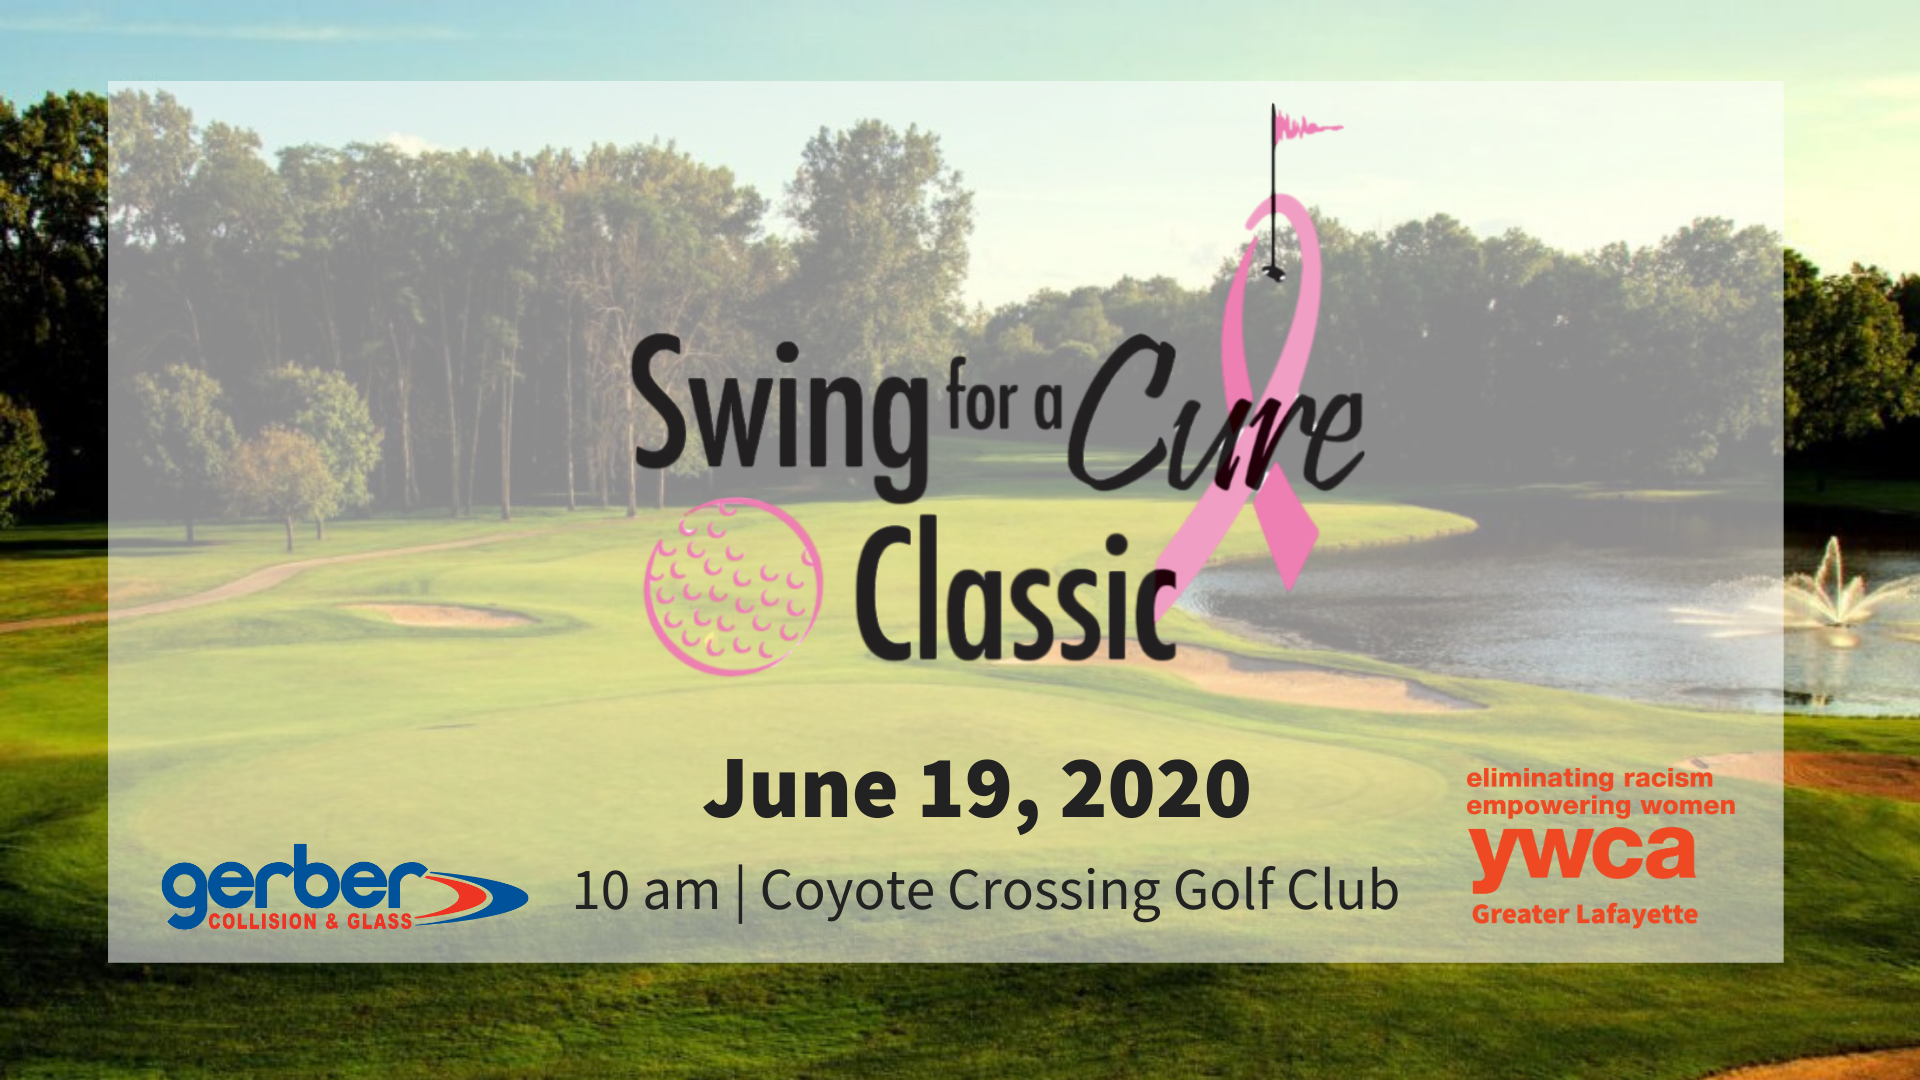 Swing for a Cure Golf Outing @ Coyote Crossing Golf Club | West Lafayette | Indiana | United States